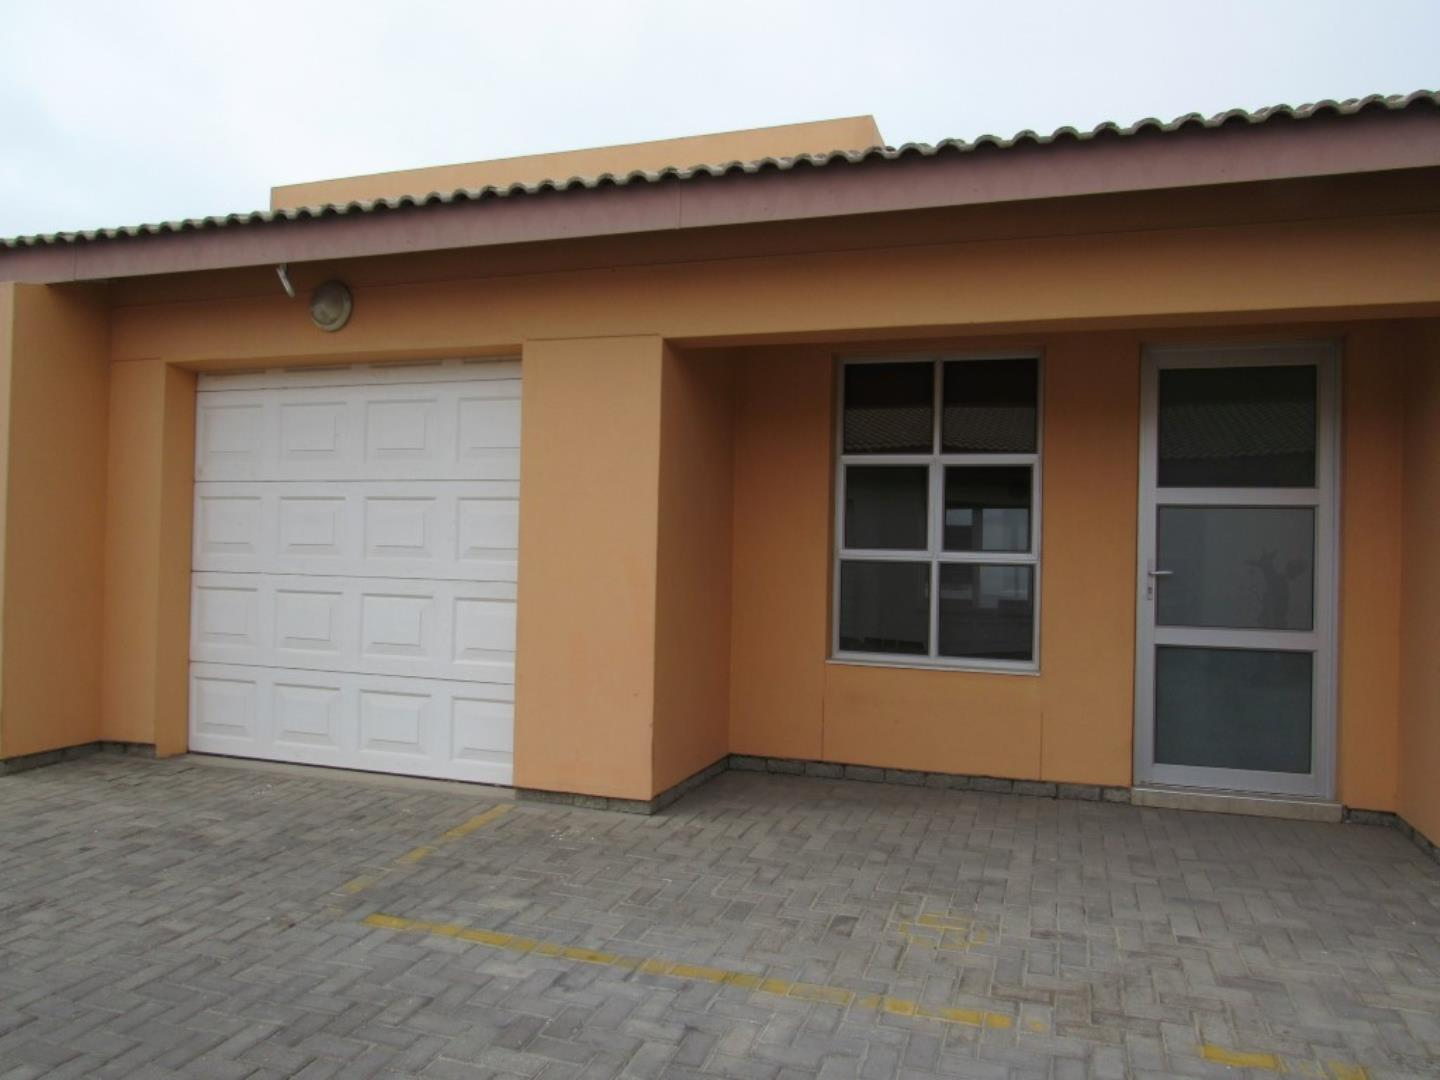 3 Bedroom Townhouse for Sale in Vineta, Swakopmund - Erongo